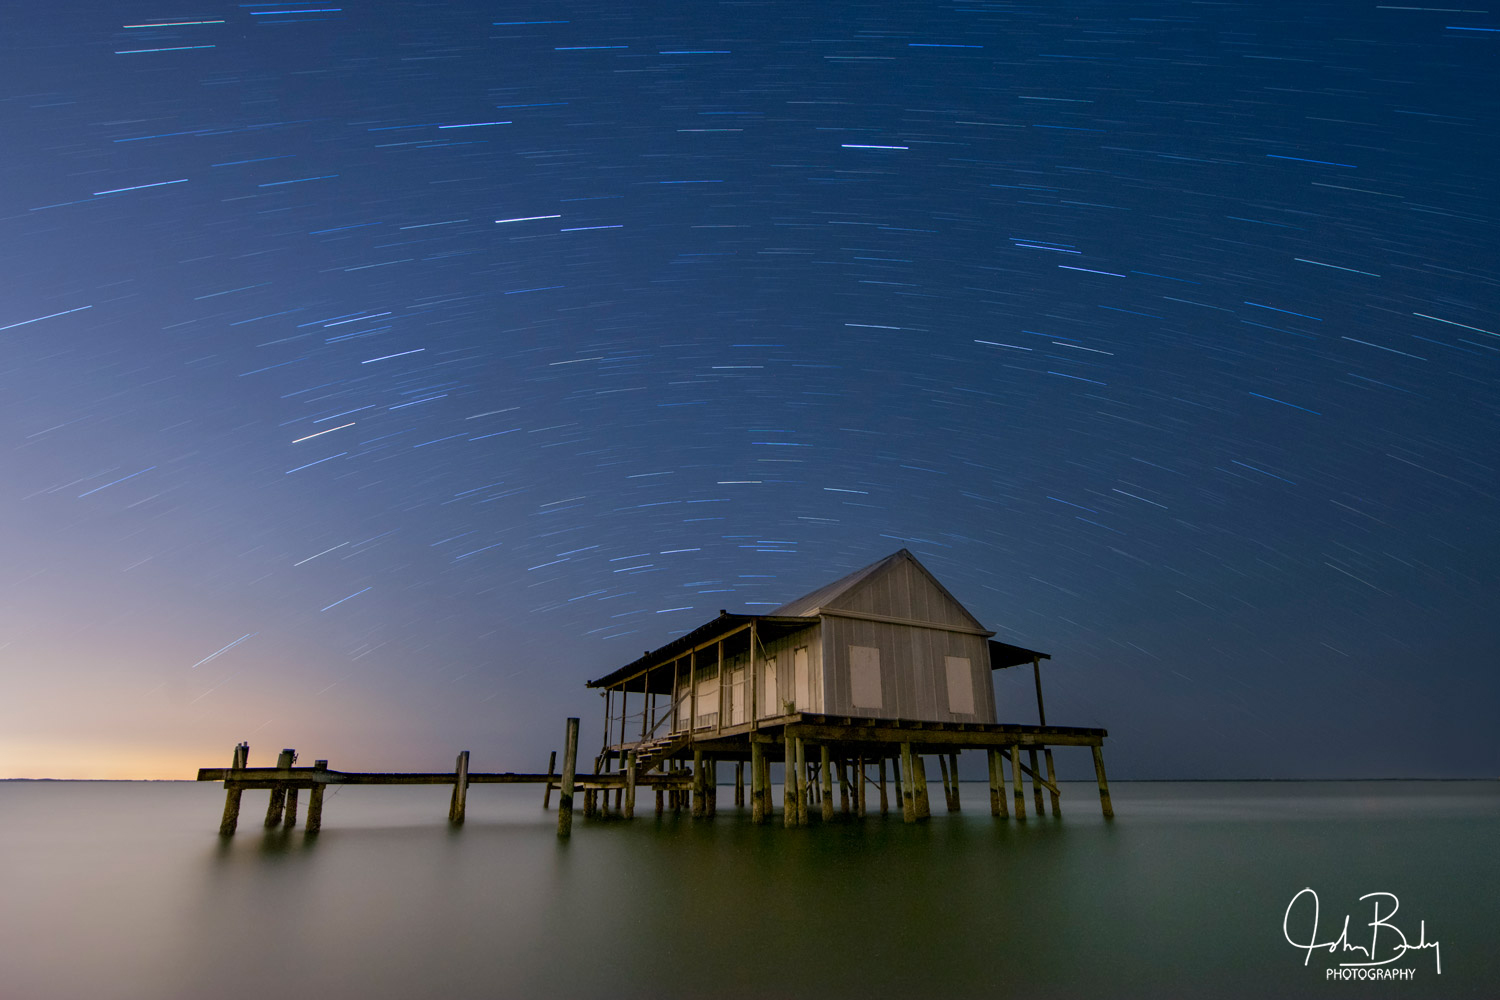 These old fish houses are beautiful during the daytime or at 3 am as in this image. This is a series ofvery long...